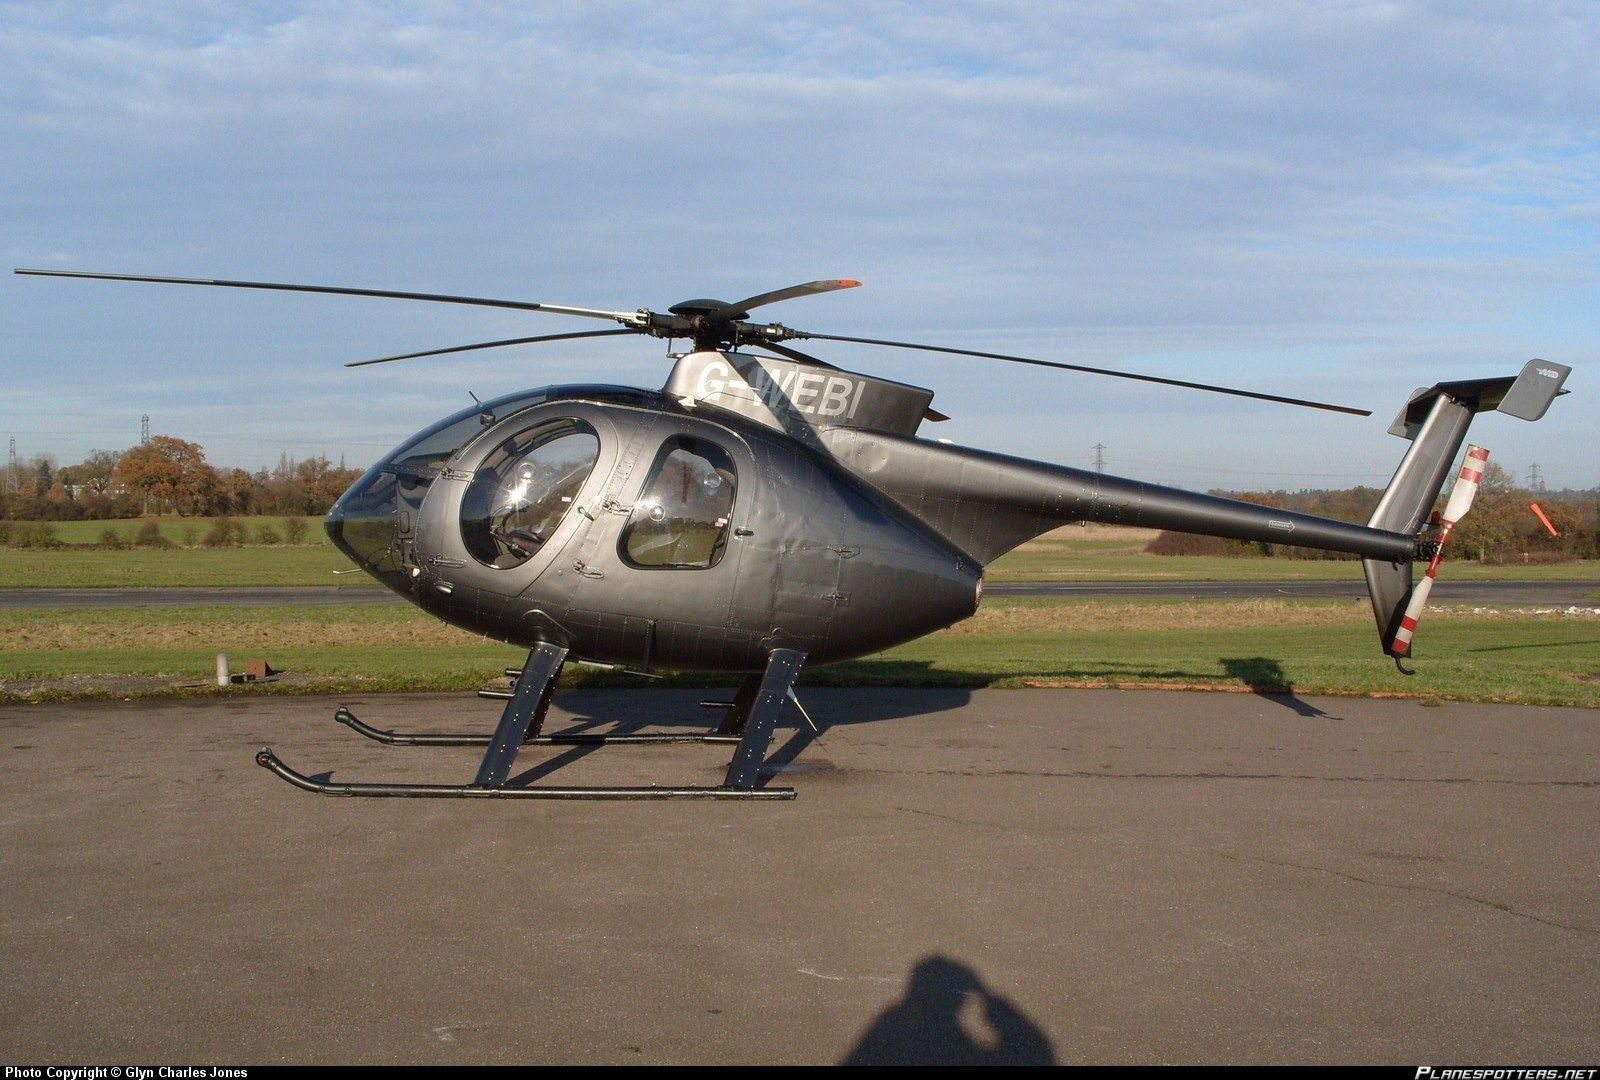 Pin by Crinn on Helicopters!! Pinterest